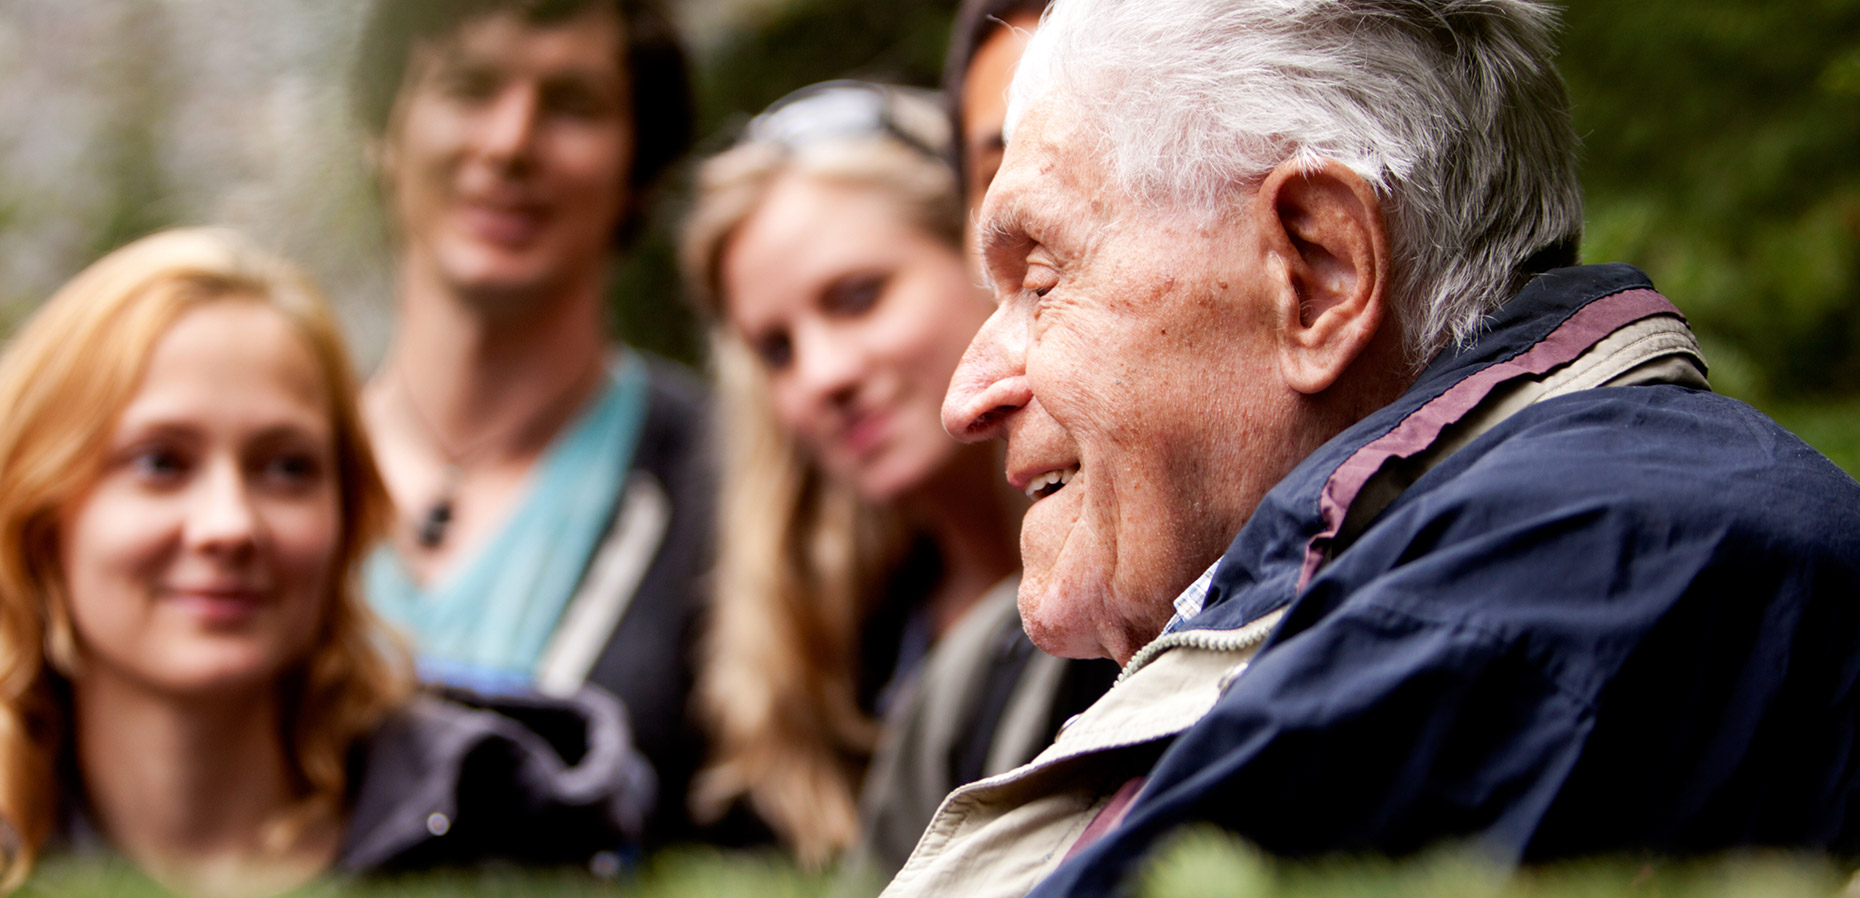 Life Insurance Products with Long Term Care Riders